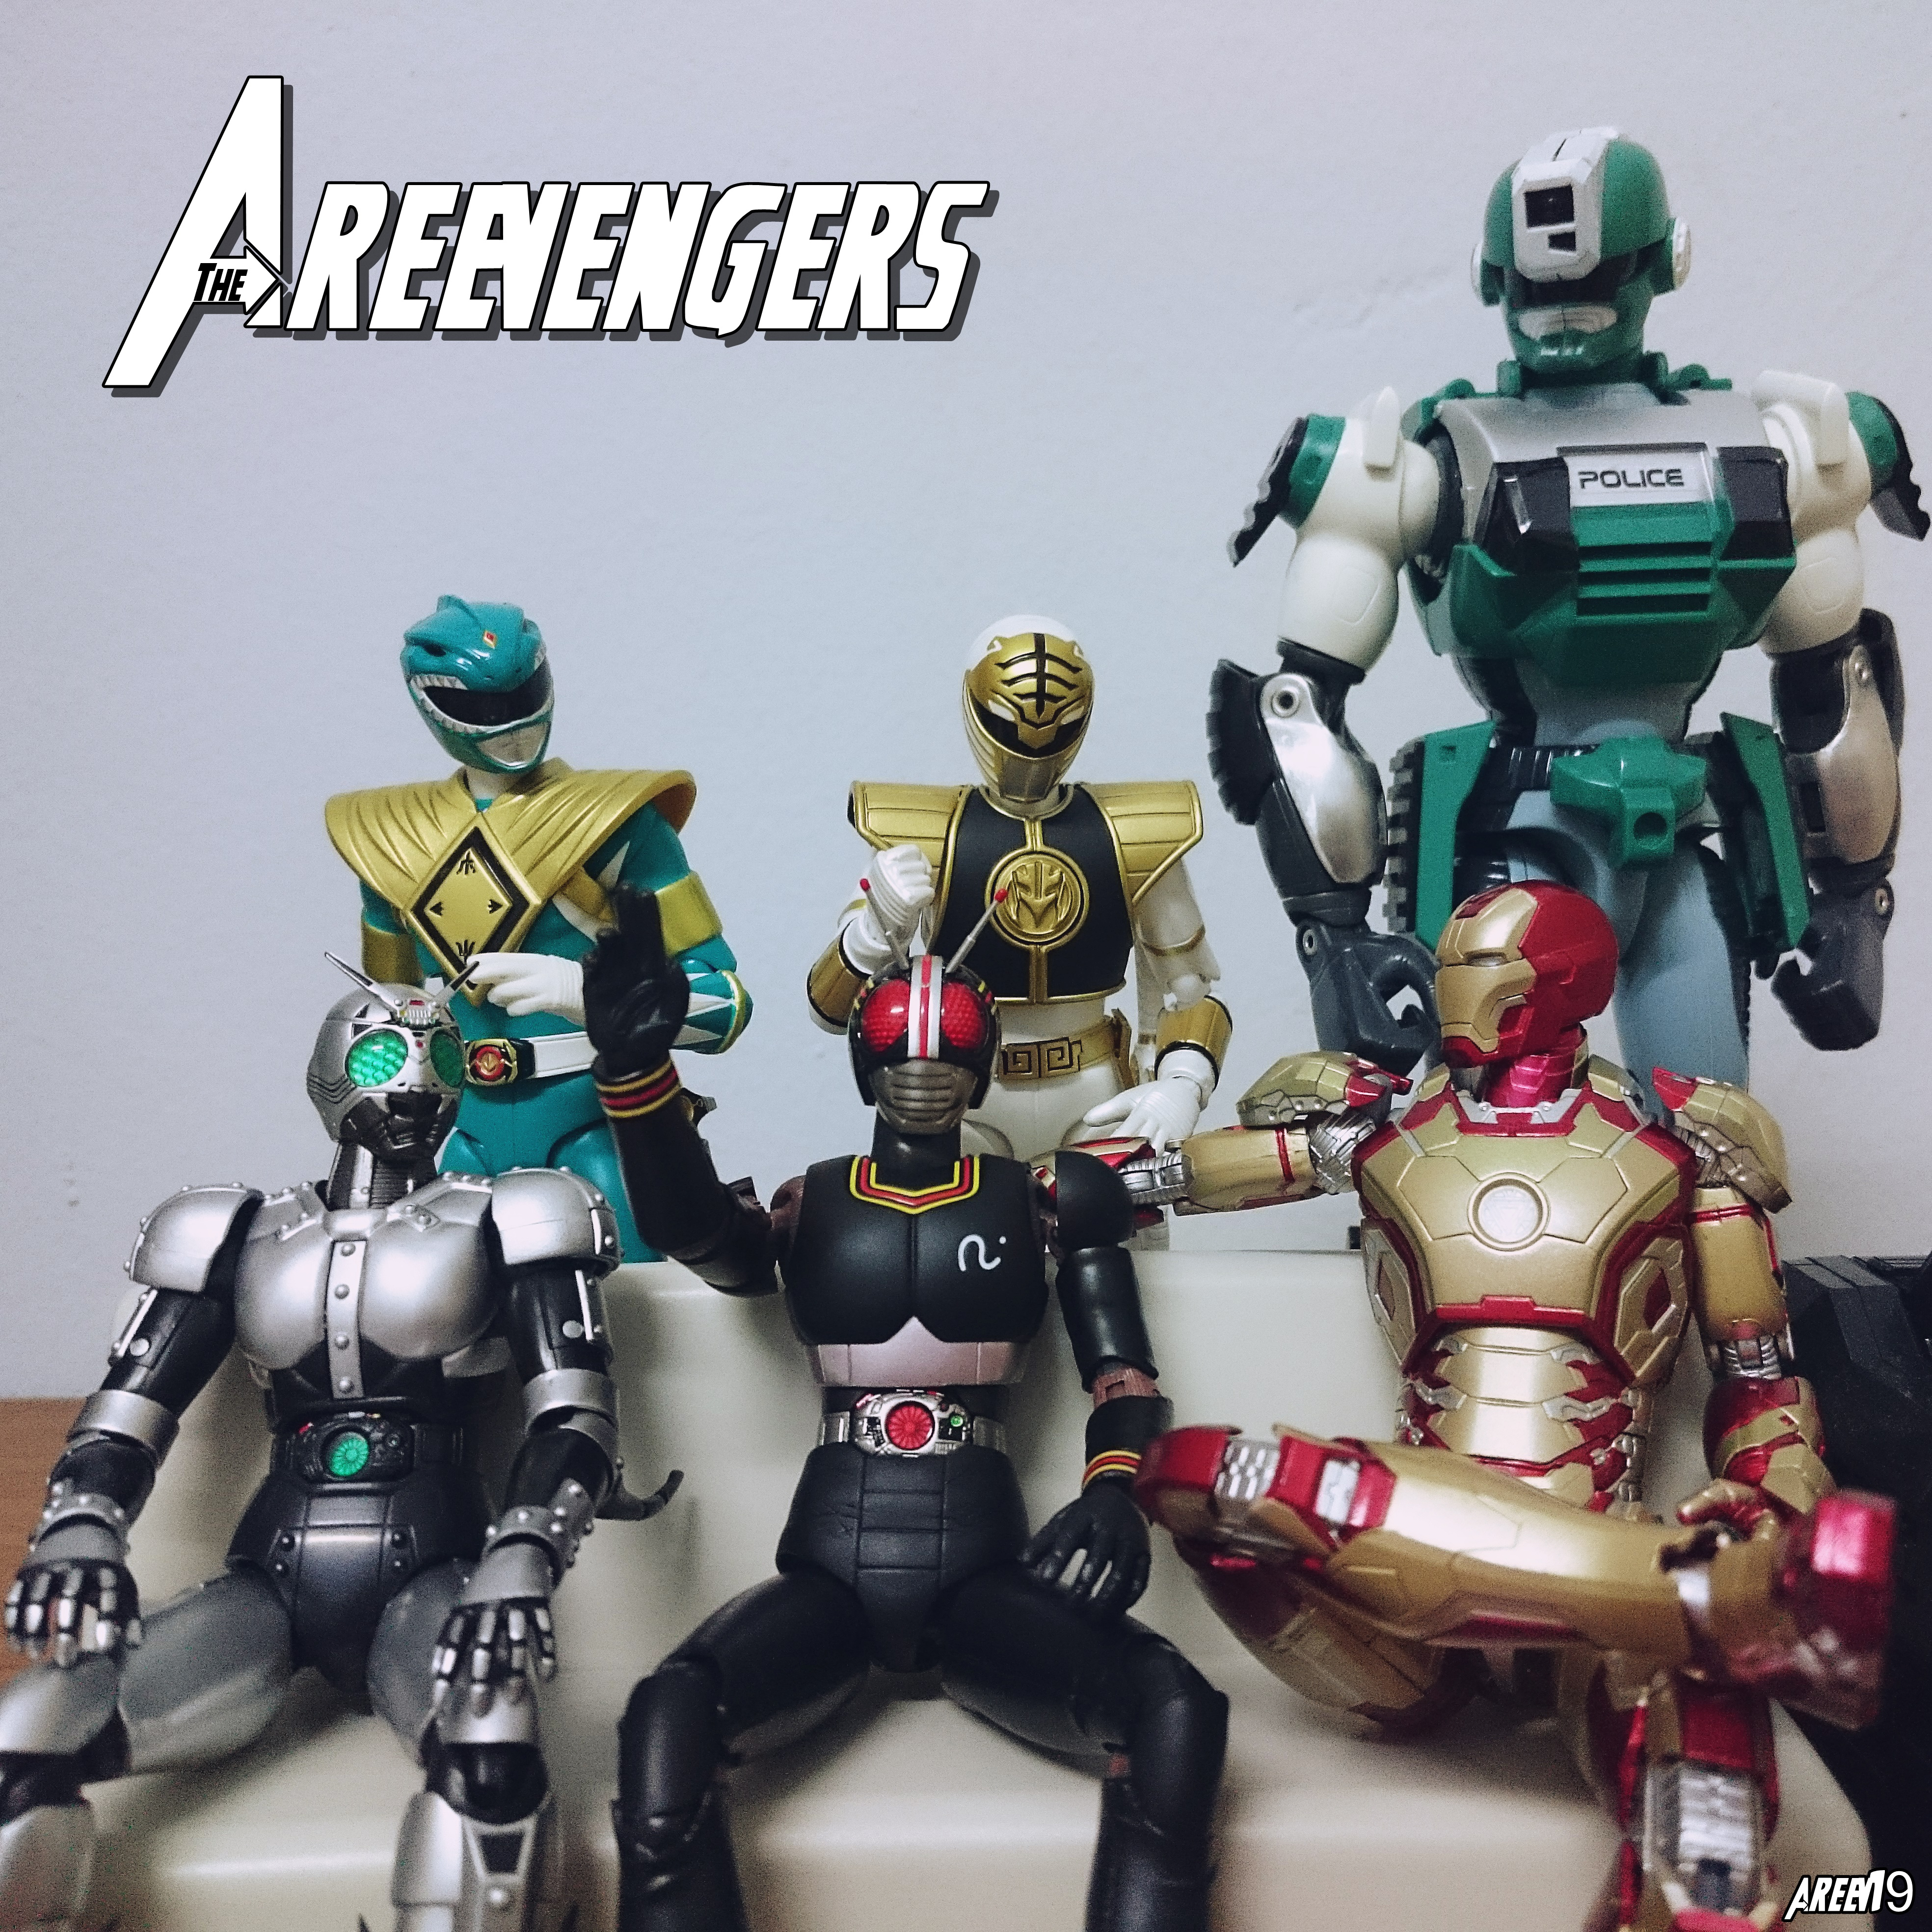 Areevengers by areev19